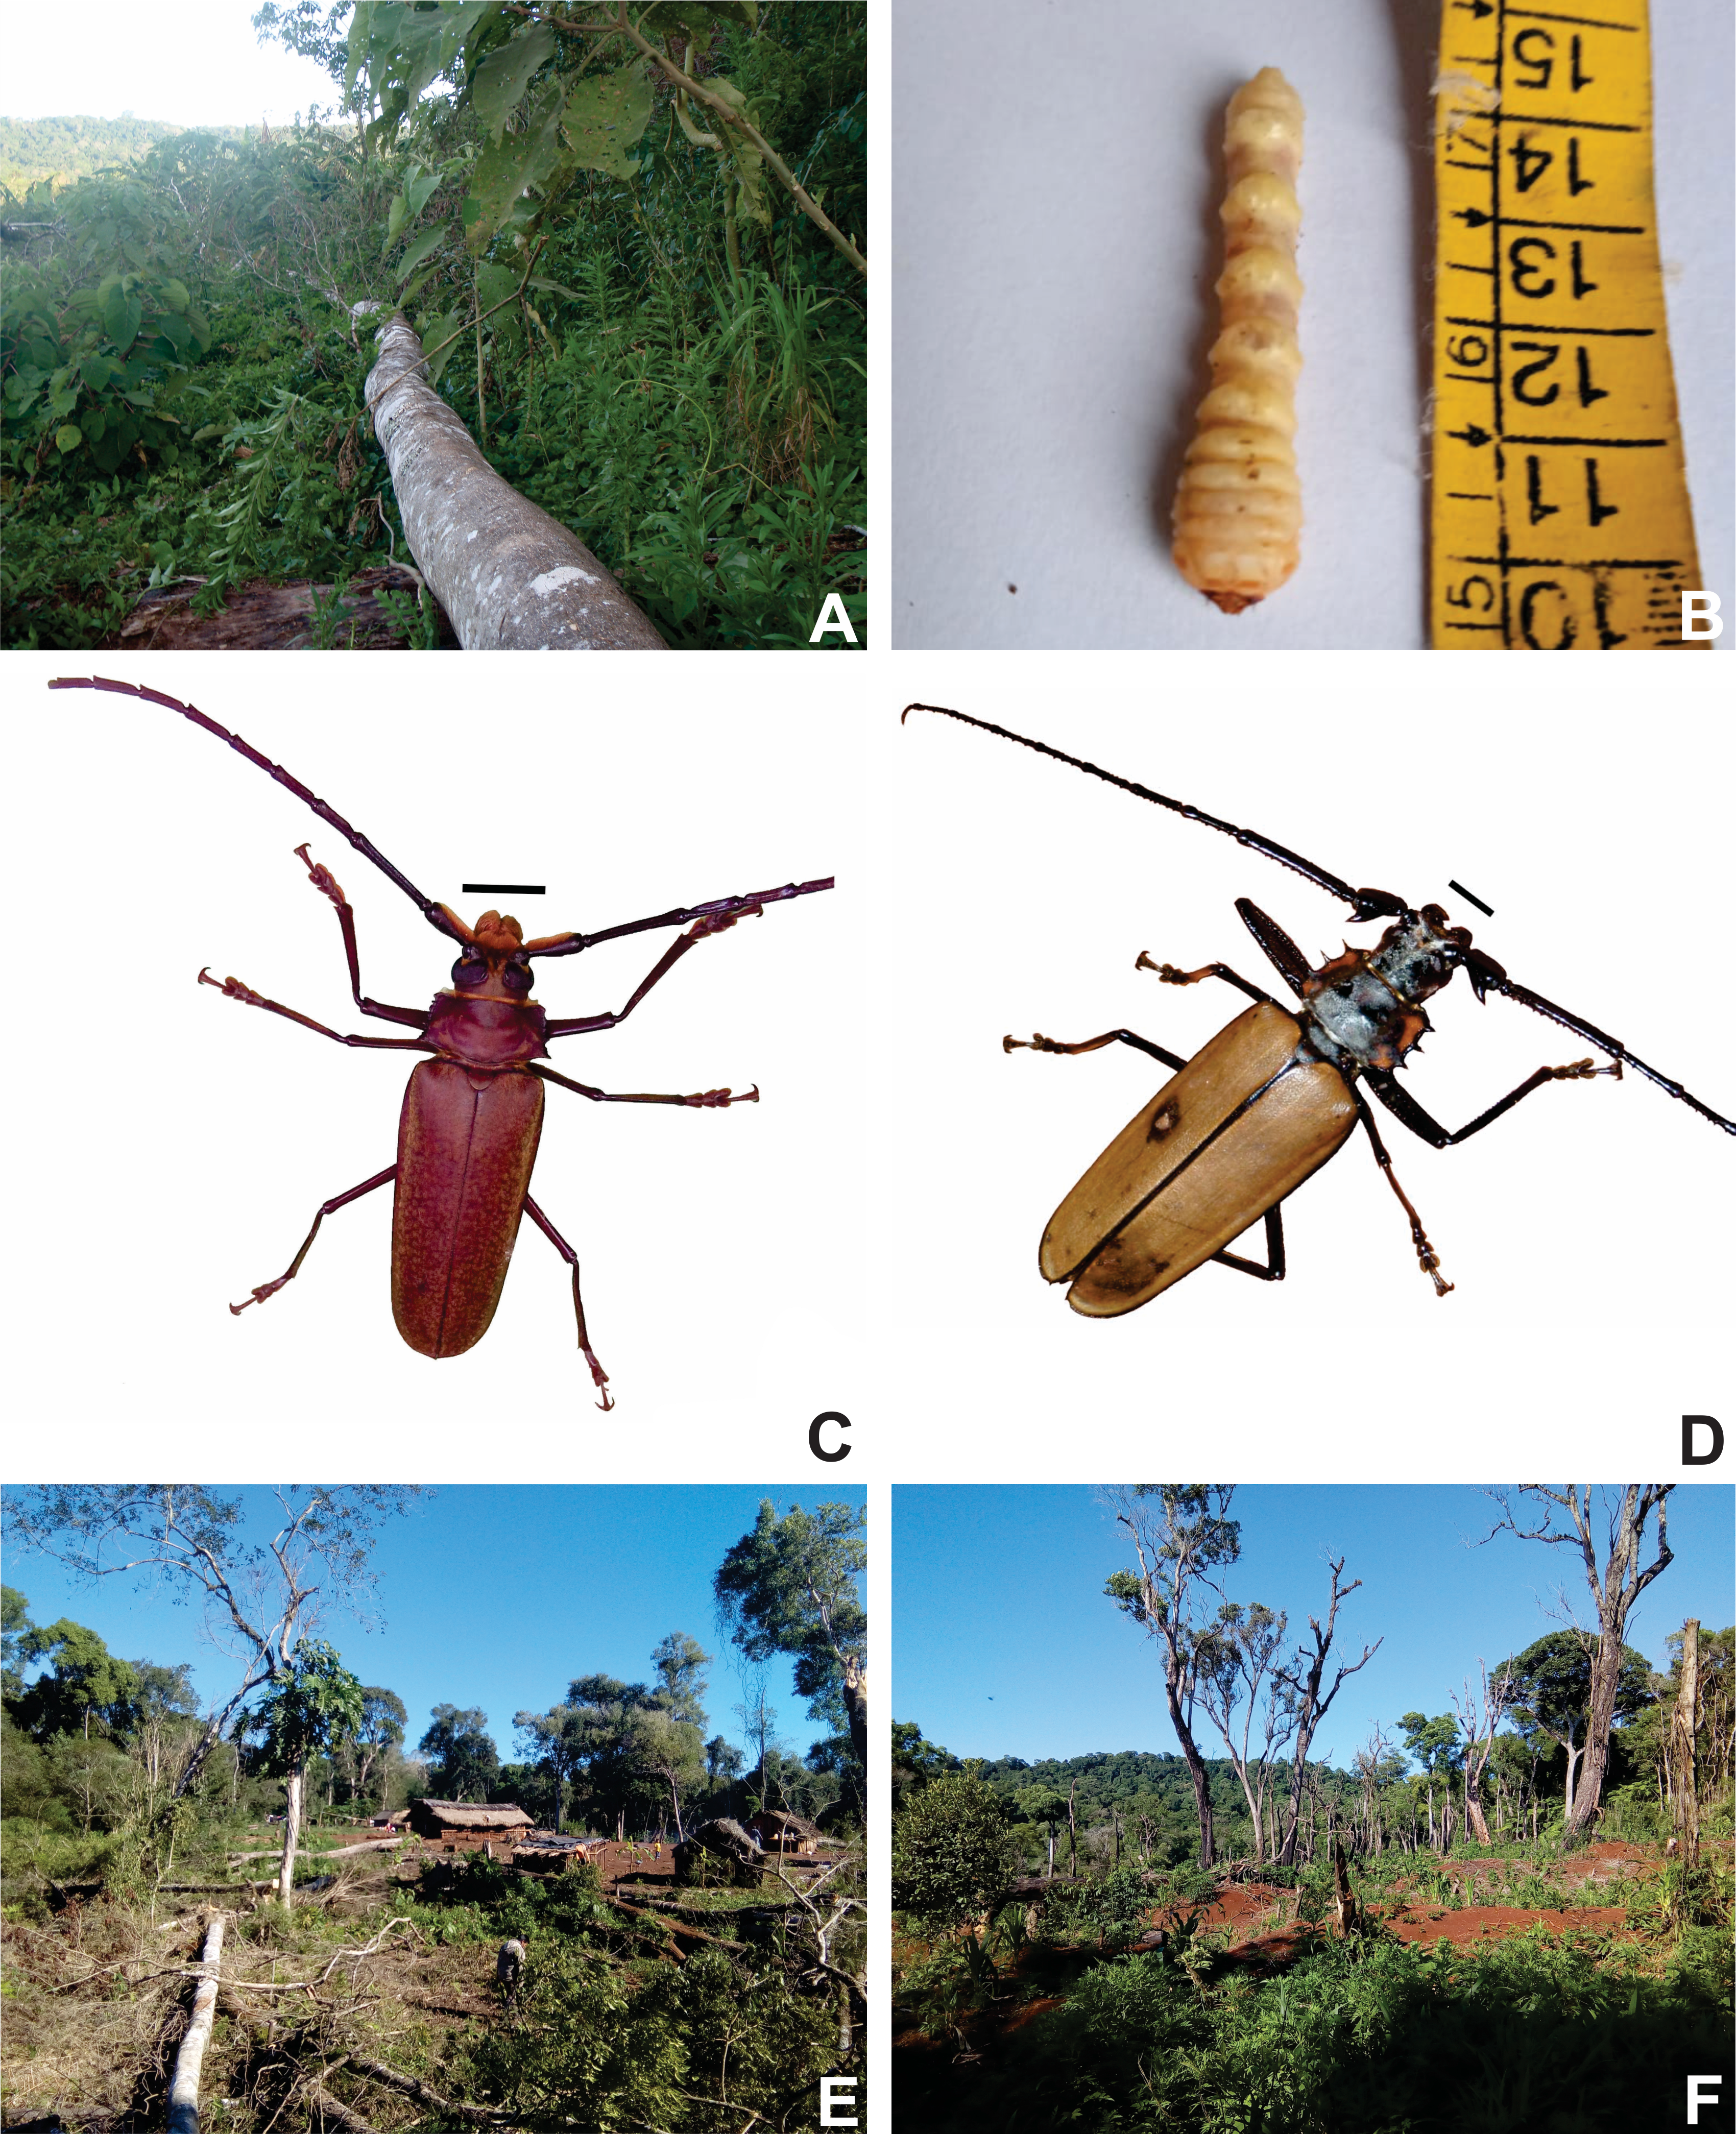 Figure 2 A Tree specimen of yvyra ñechĩ, (Balfourodendron ridelianum) felled for larval production. B ycho akambe edible cerambiciform larva. C Orthomegas jaspideus (scale-1 cm). D Male adult insect Enoplocereus armillatus (scale-1 cm). E Preparation of the land for agriculture. F Growing area.